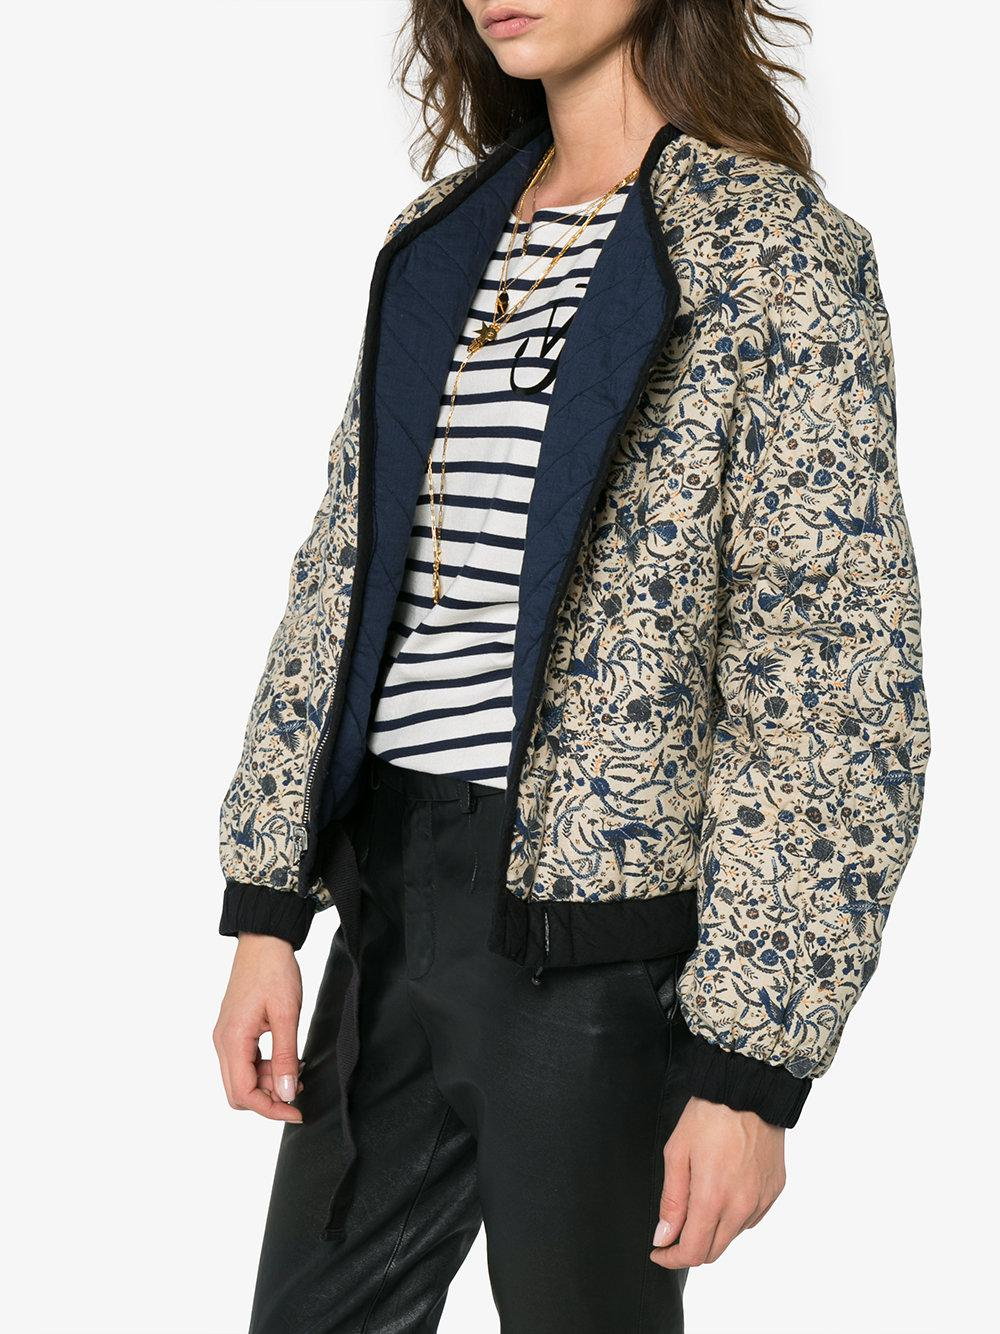 Reversible Floral Quilted Jacket - Blue Isabel Marant Buy Cheap Countdown Package UKVZzbx